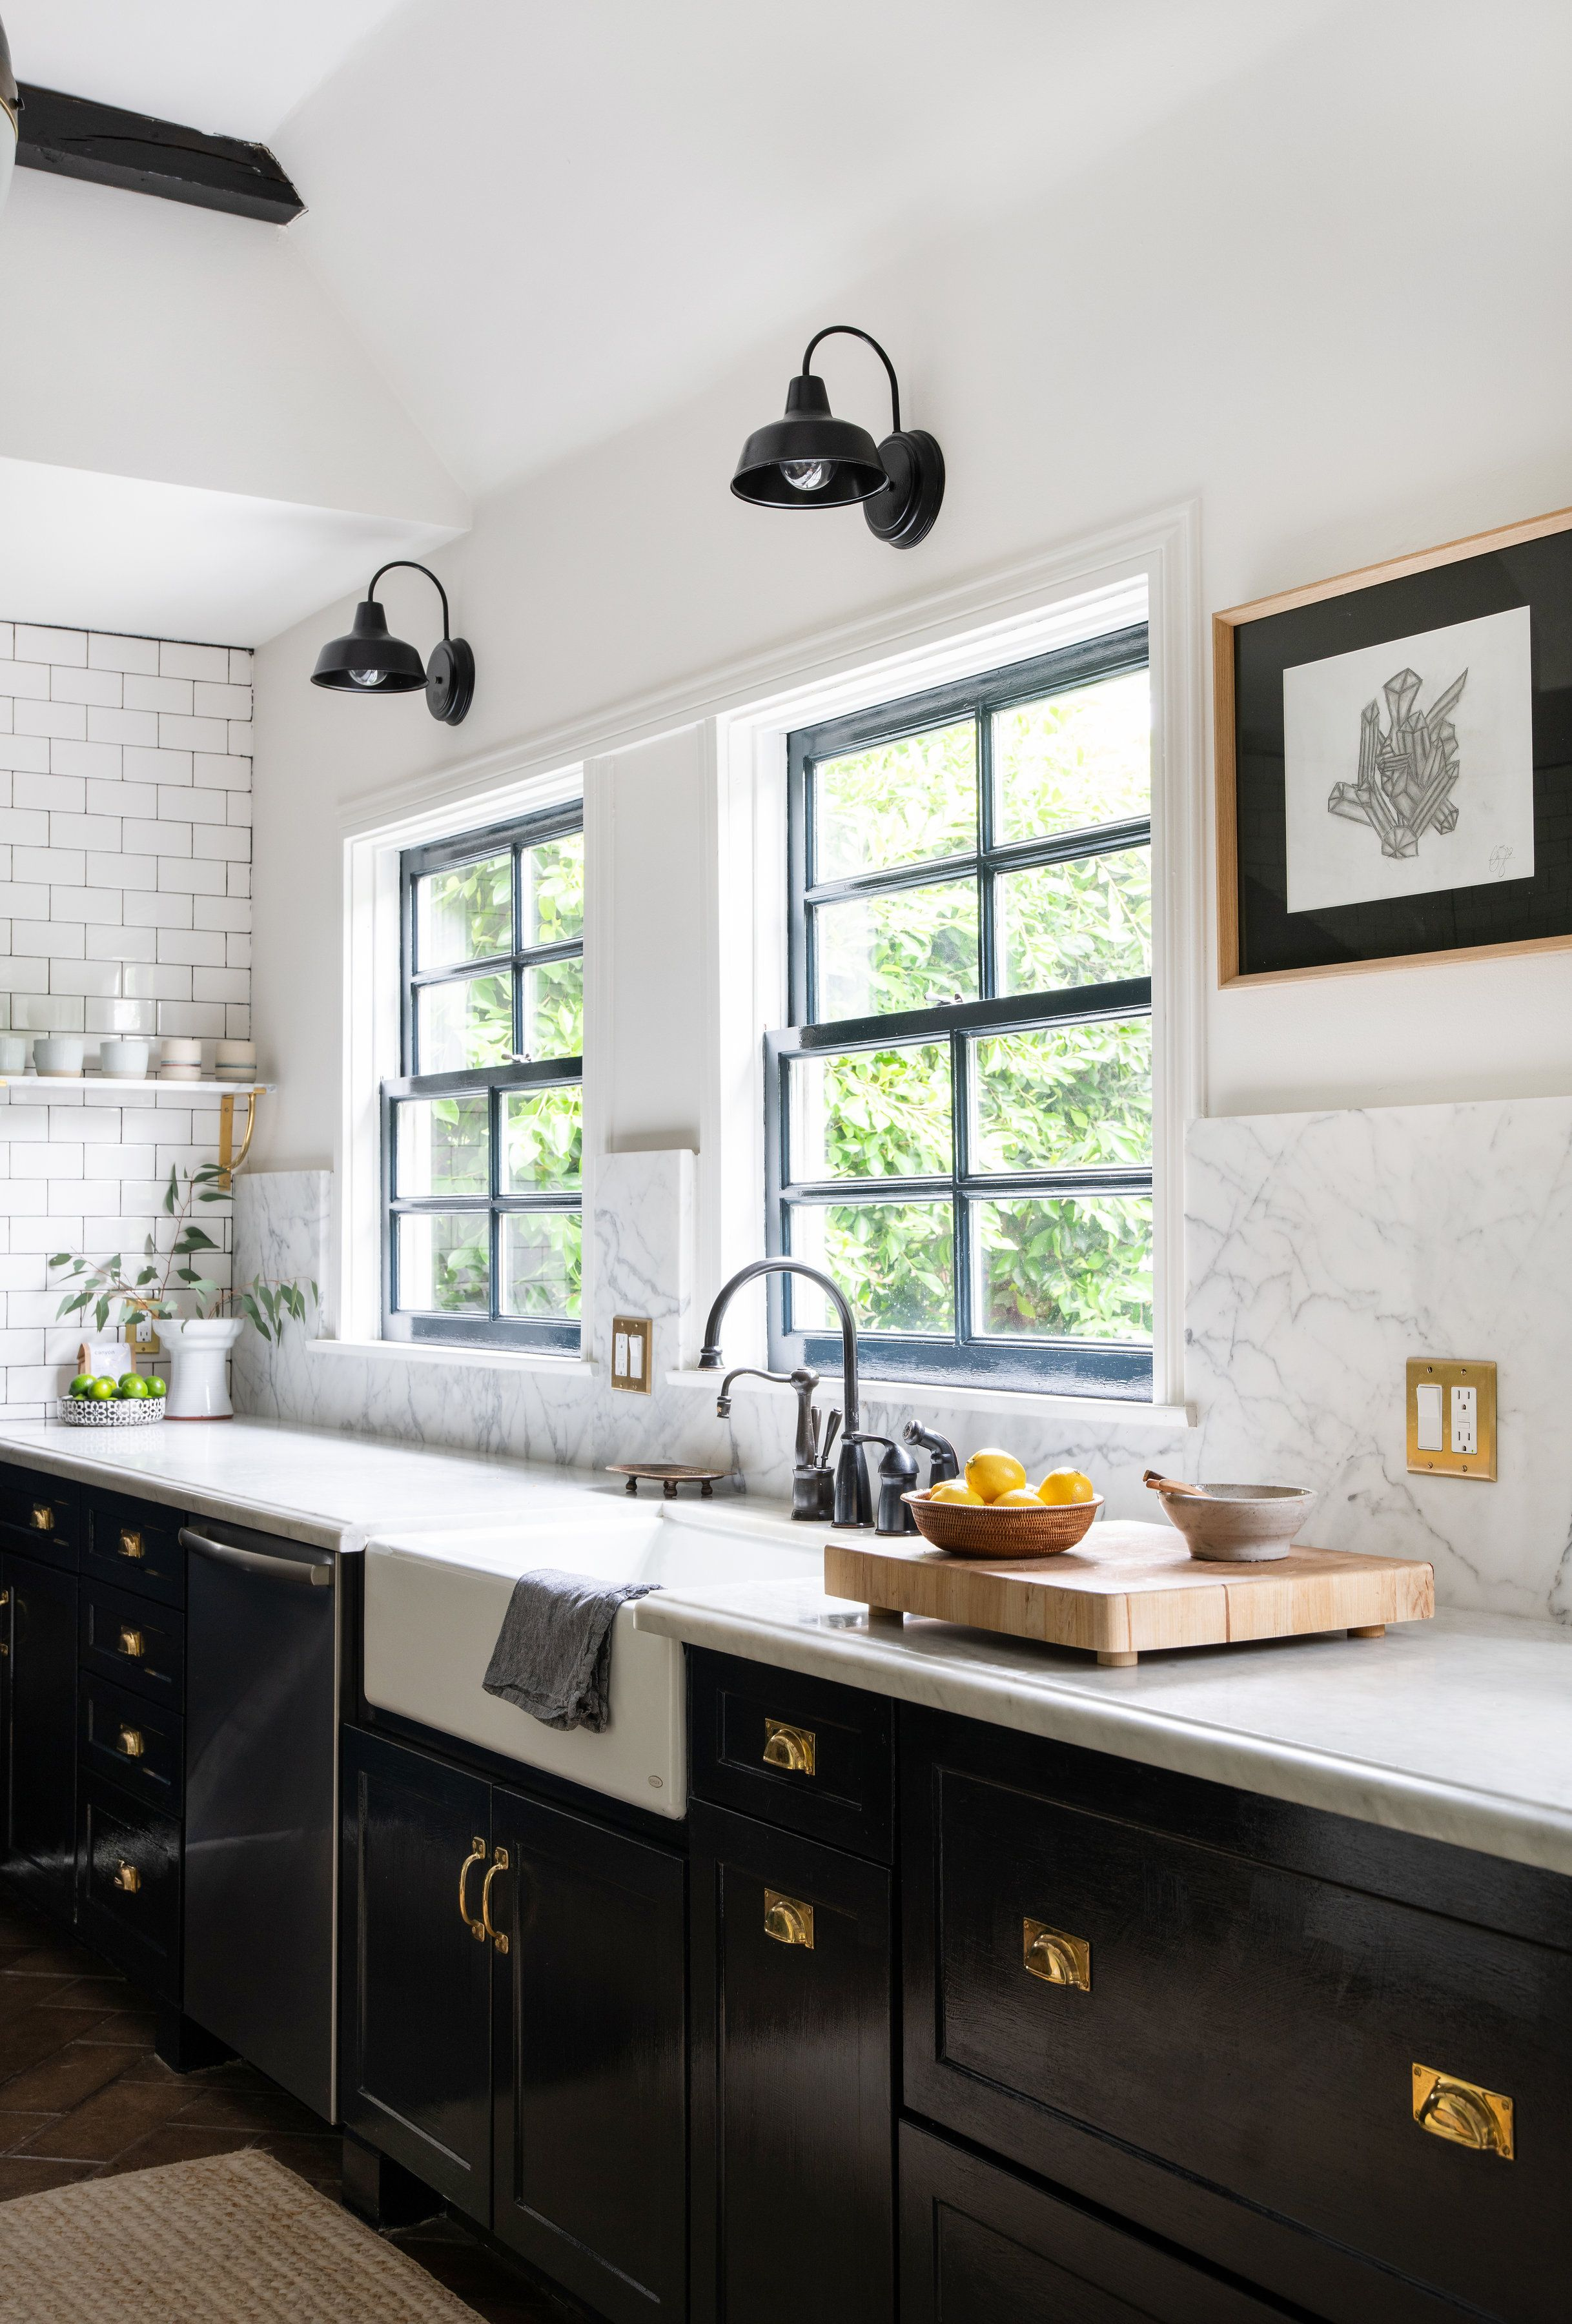 kitchen with navy cabinets gold hardware and farmhouse lights in hancock park los angeles ca on kitchen cabinets gold hardware id=87564